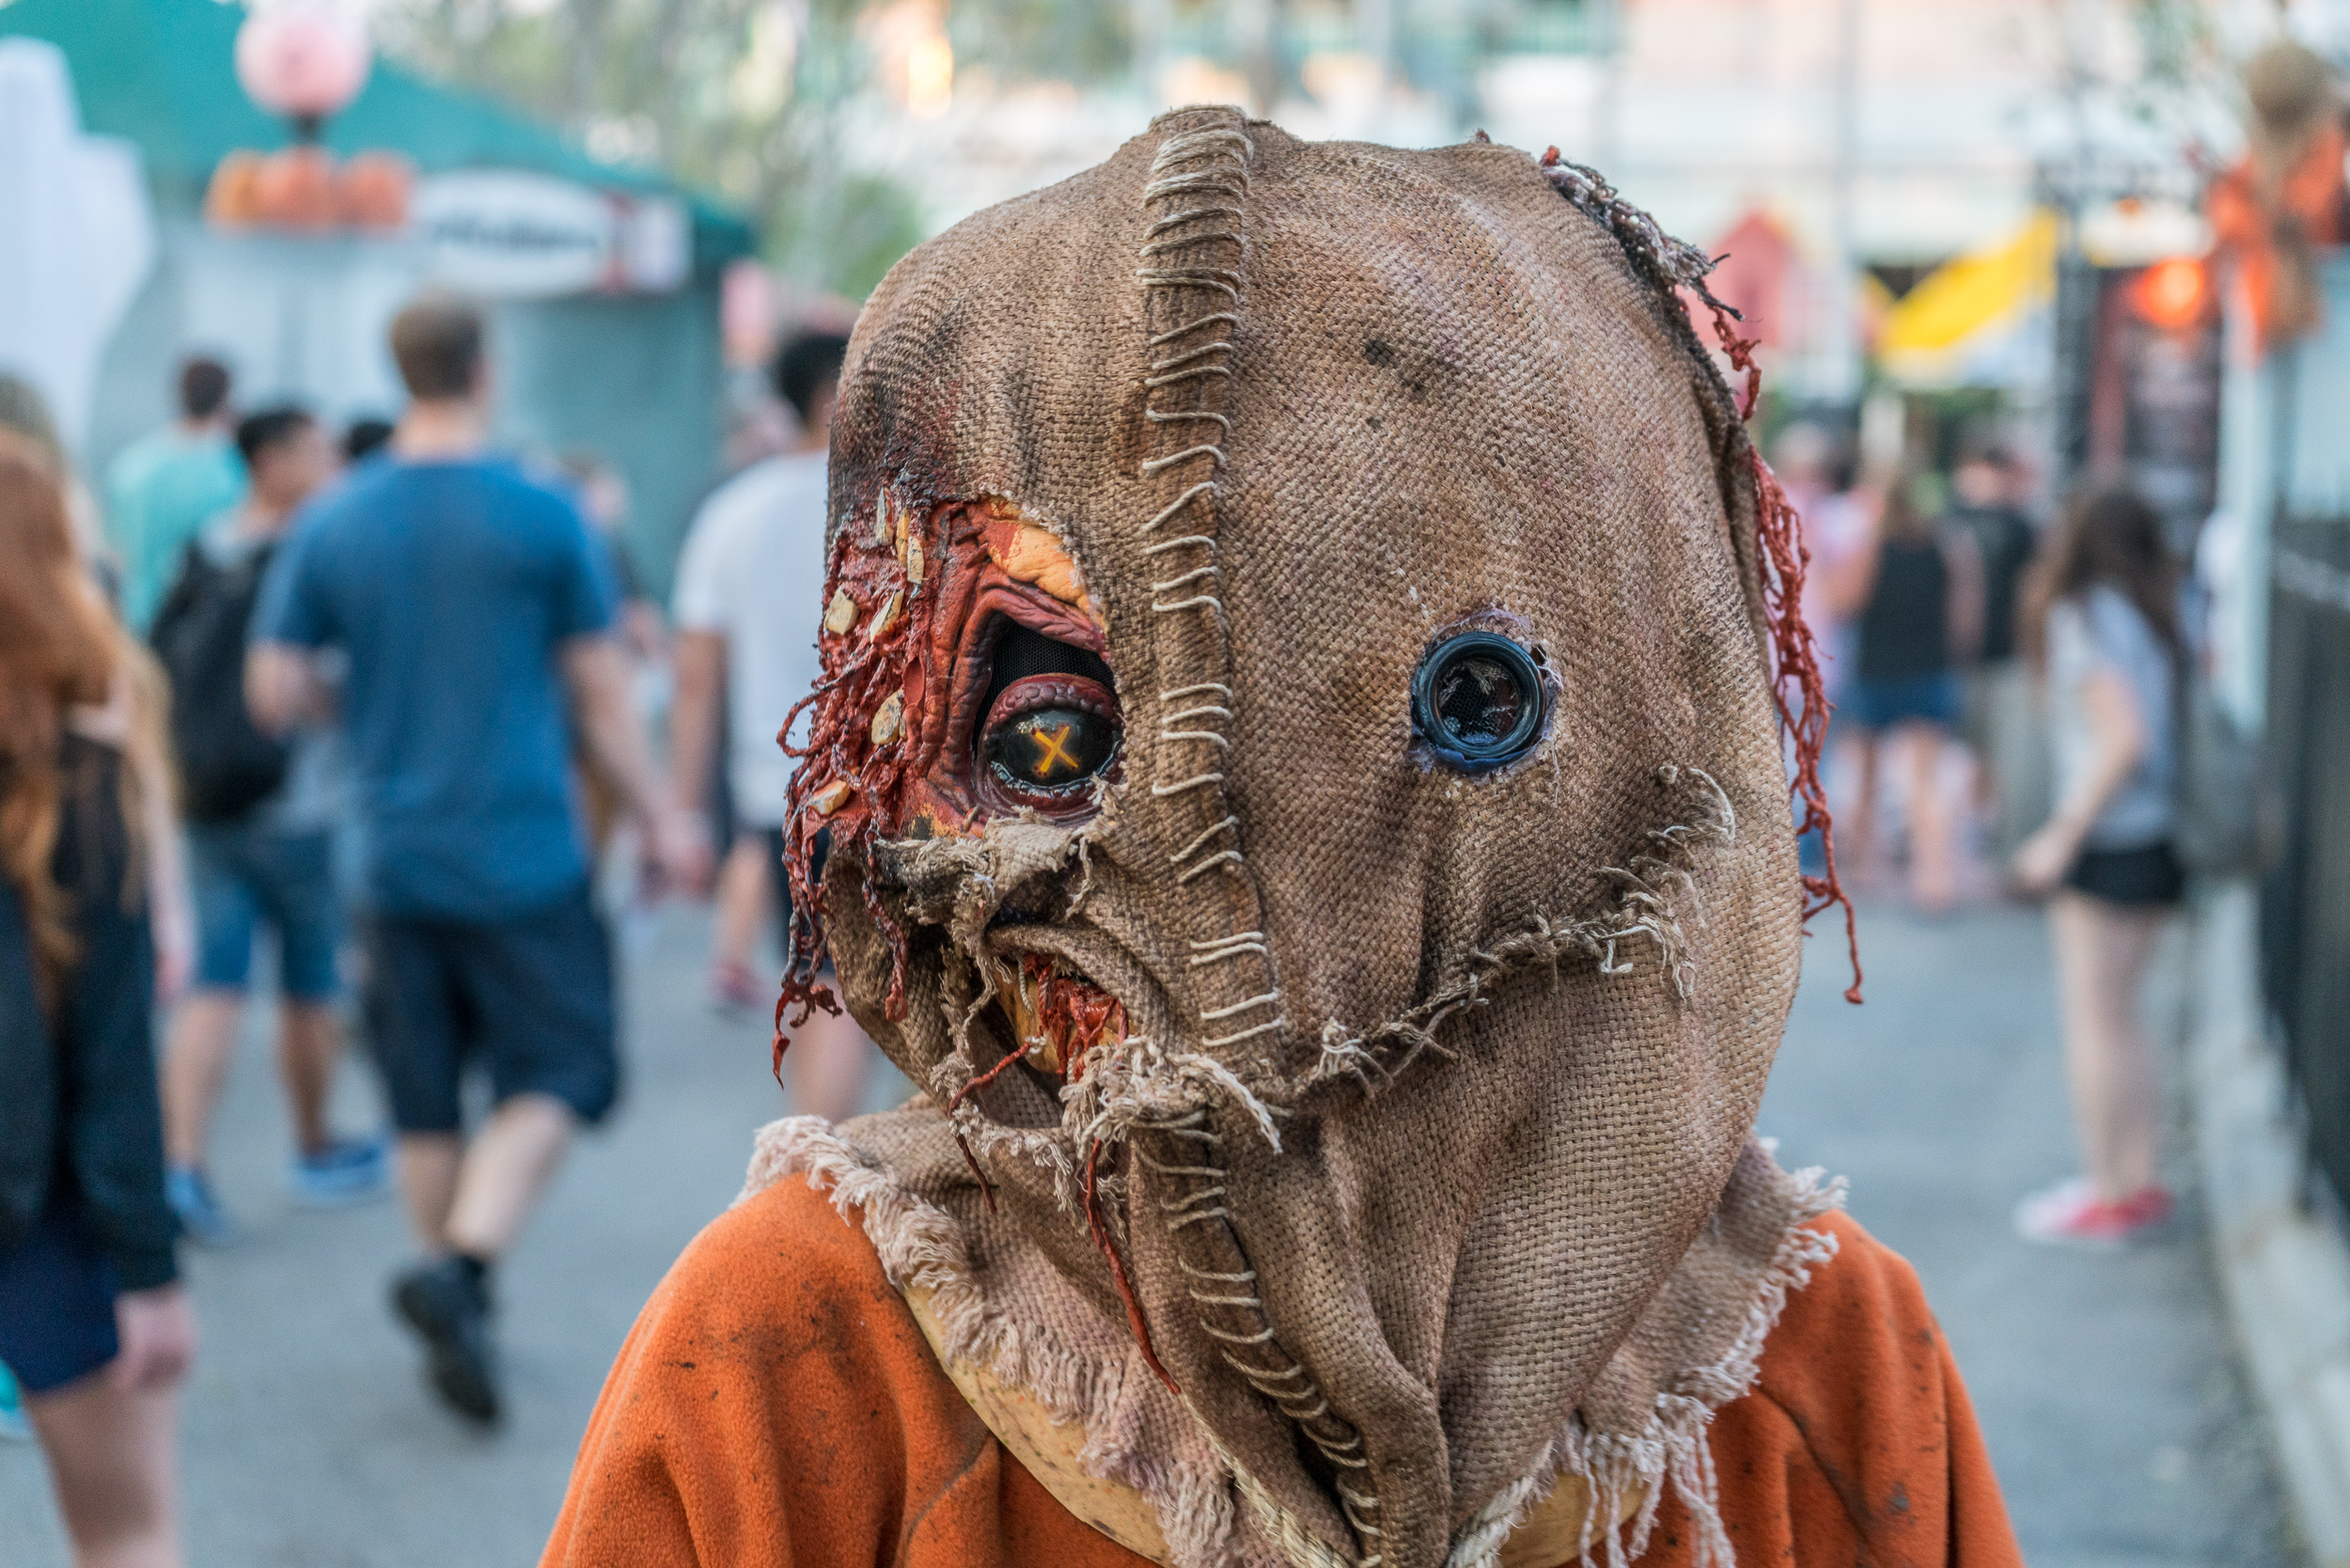 Trick R Treat House Announced For Halloween Horror Nights